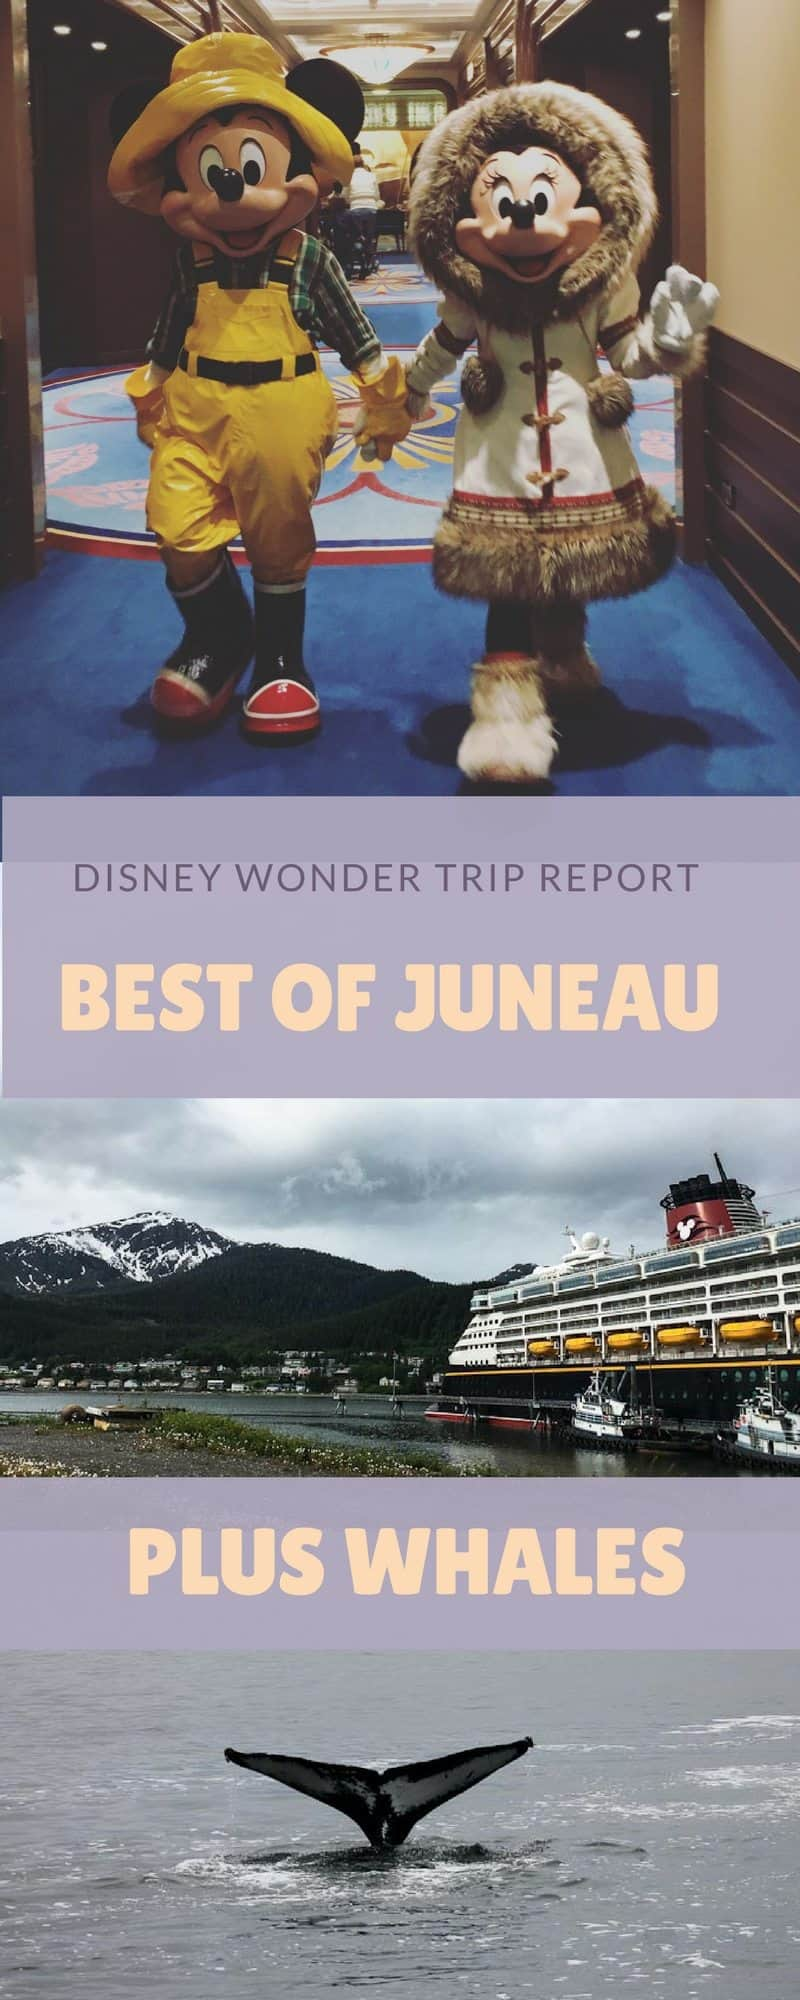 Disney Wonder Best Of Juneau Excursion Plus Whales Plaid Shirt Yoga Pants